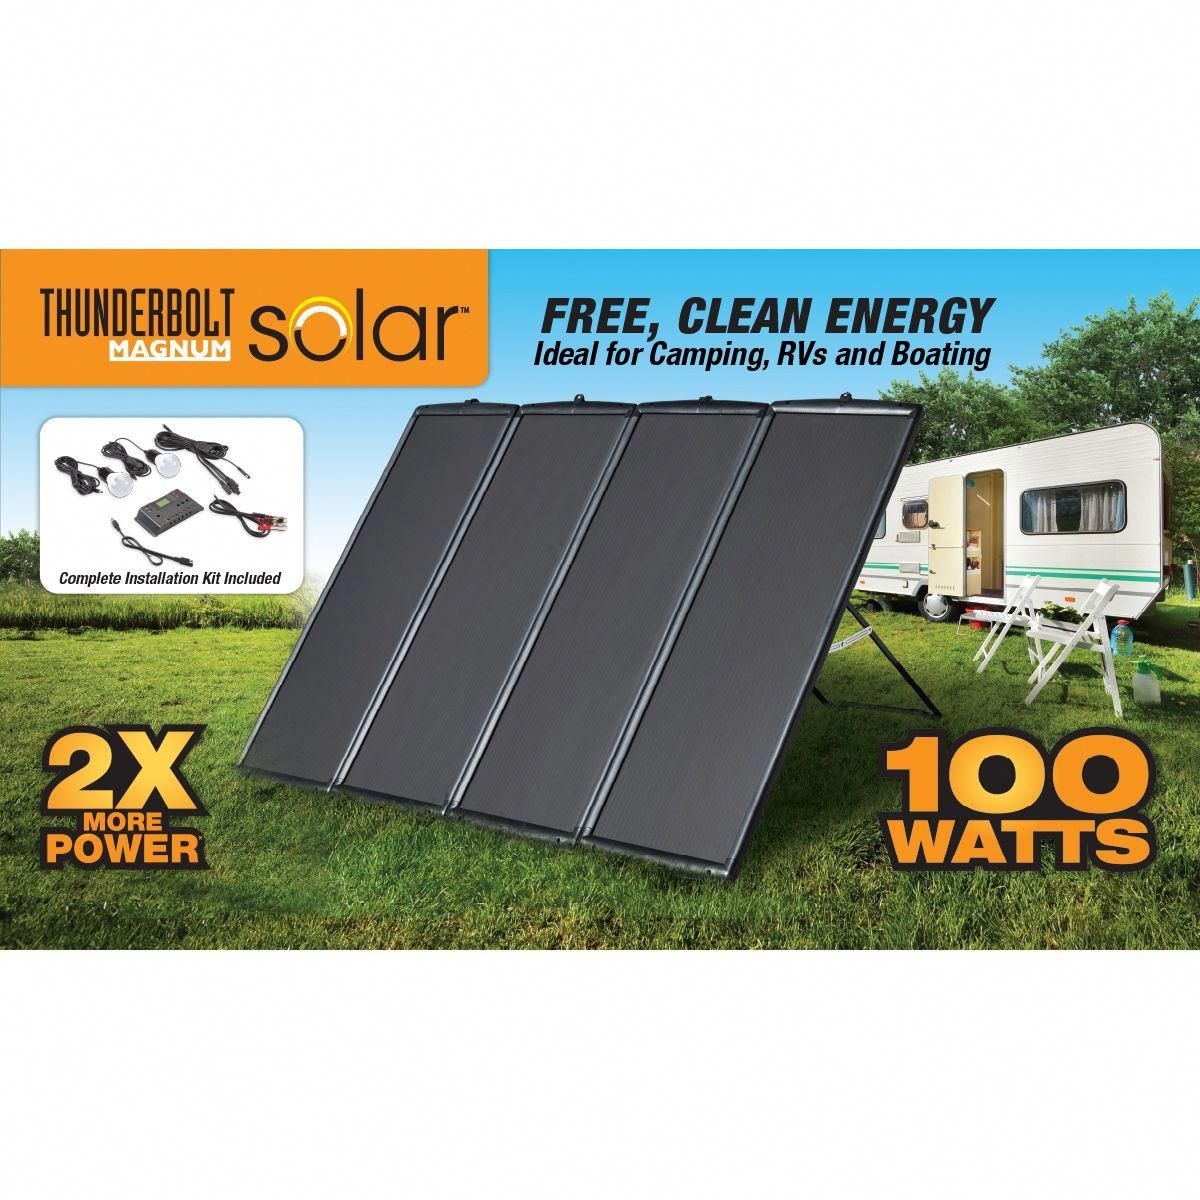 solarpanels,solarenergy,solarpower,solargenerator